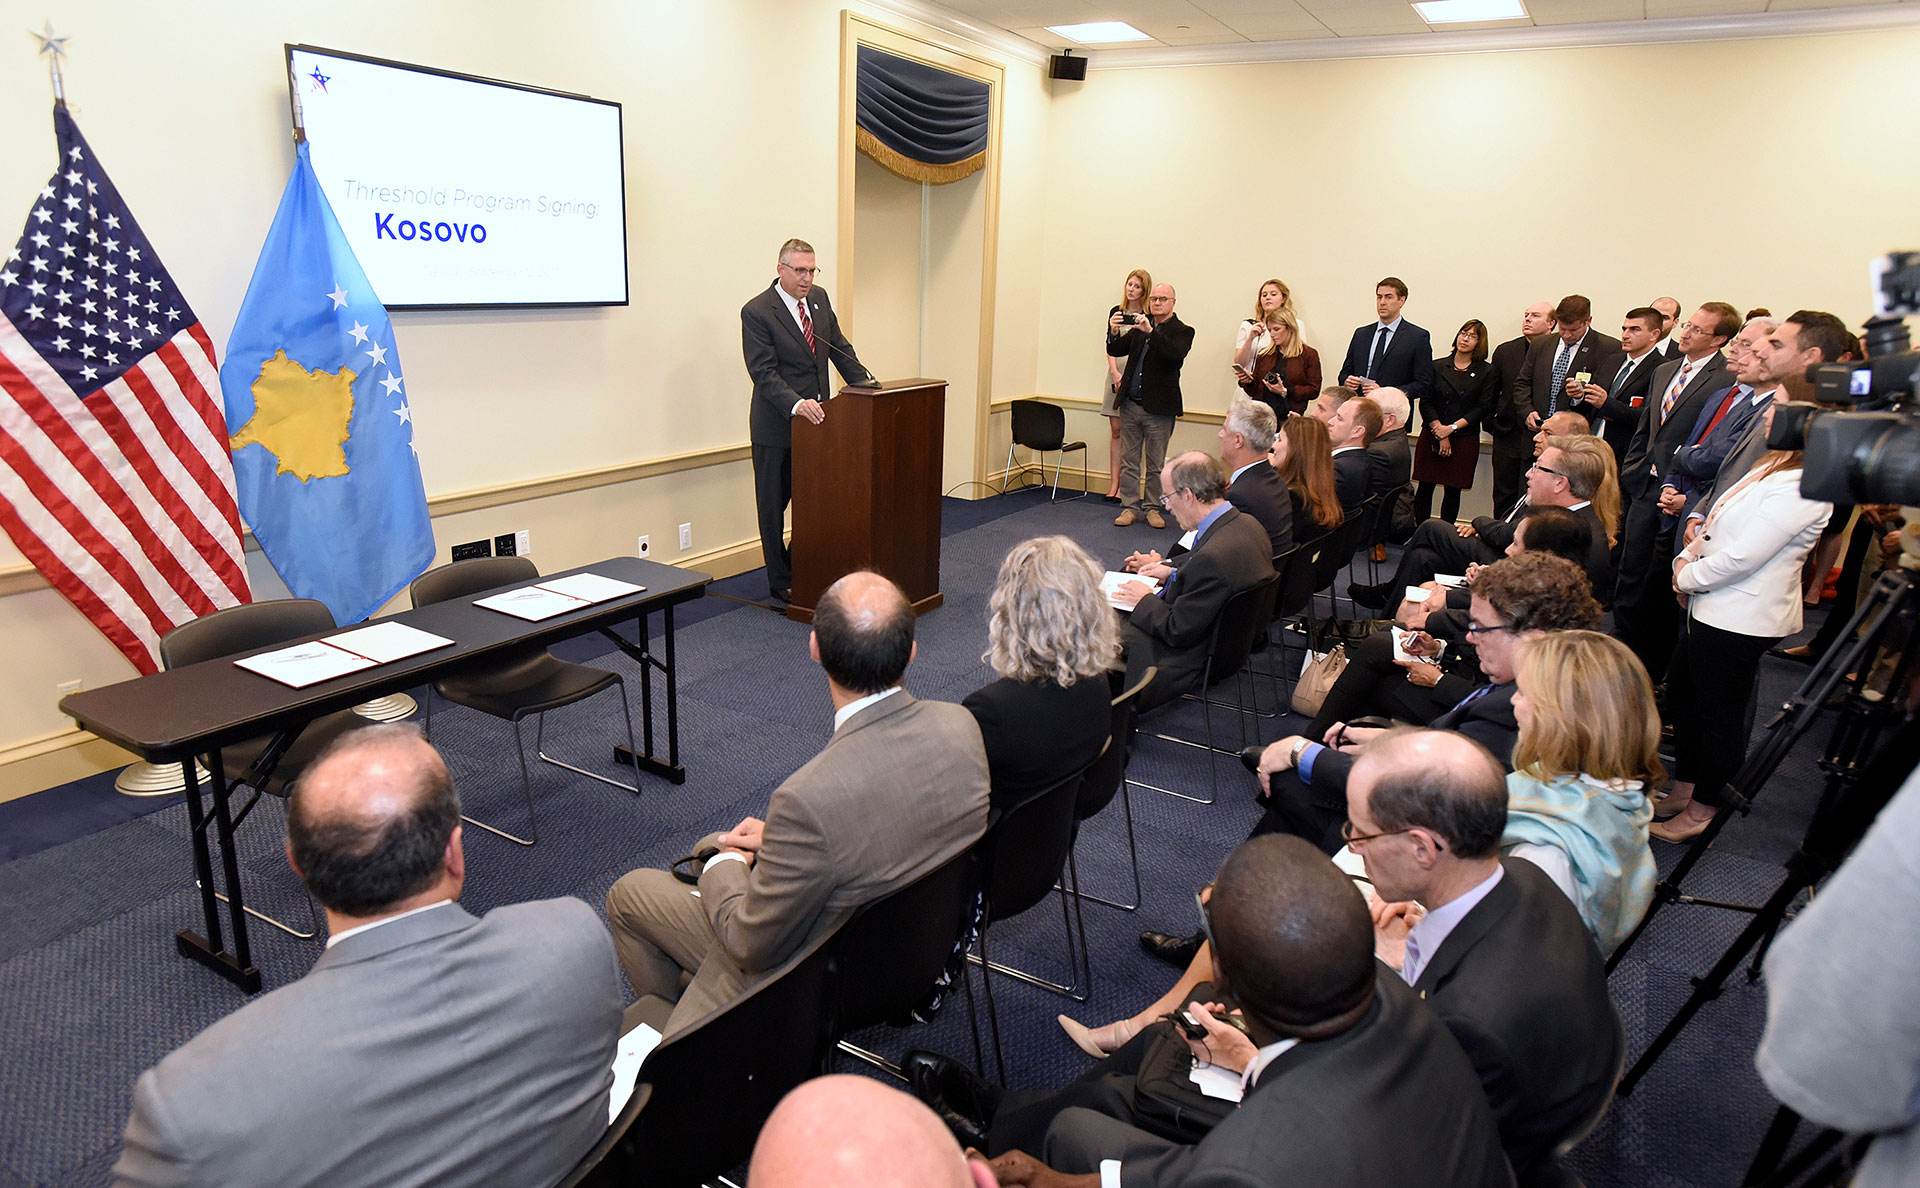 Jonathan Nash, acting CEO of Millennium Challenge Corporation, speaks before signing the Kosovo Threshold Program, Tuesday, Sept. 12, 2017 in Washington, D.C.